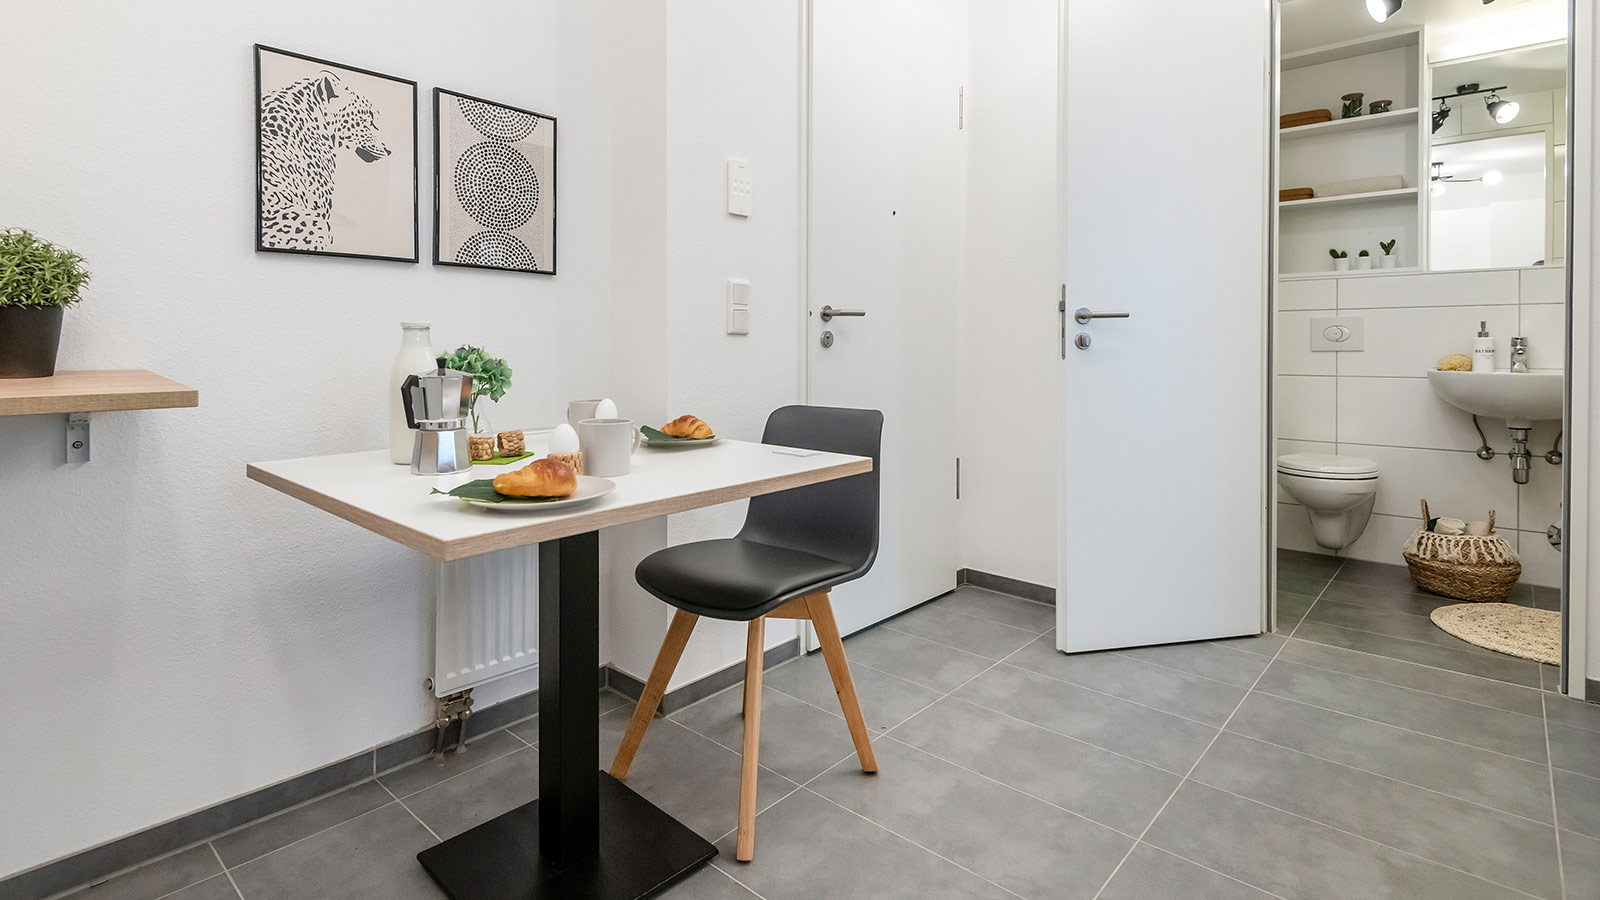 MZ_Musterapartment_Kueche_2er-WG-3_1600x900px